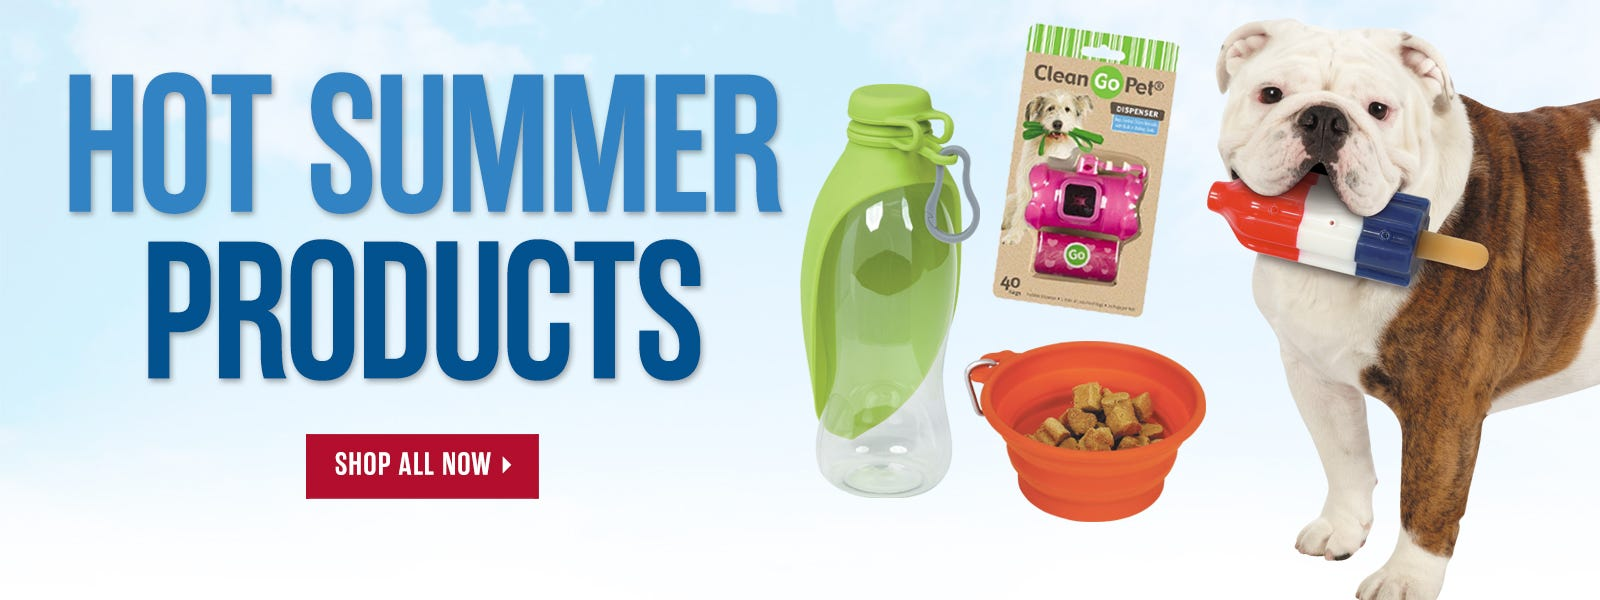 Hot Summer Products